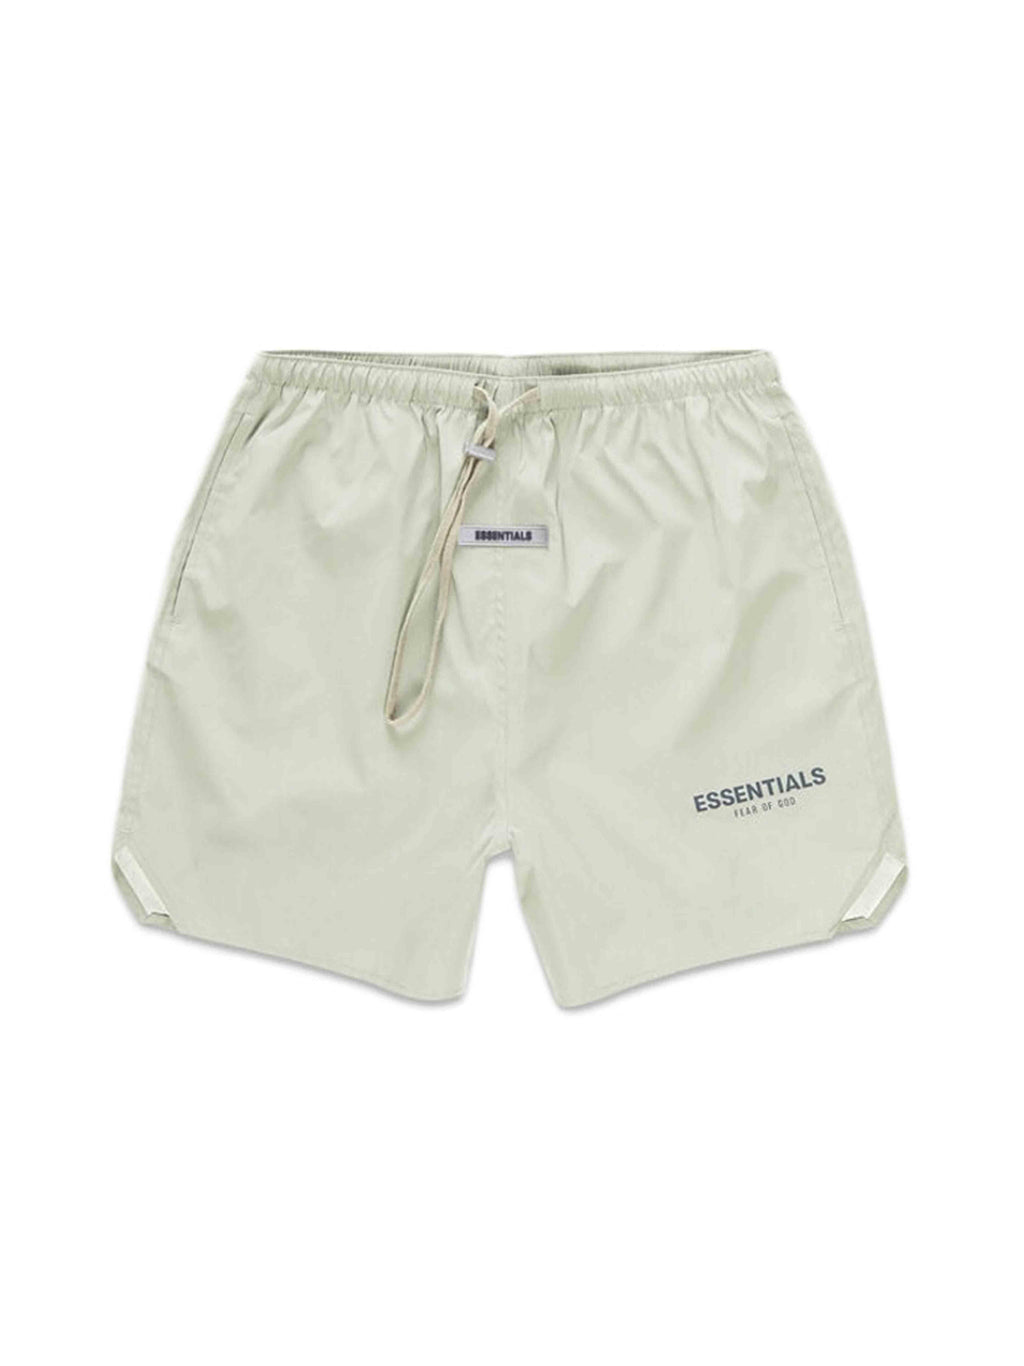 FOG Essentials Volley Shorts Alfalfa Sage - PRIOR